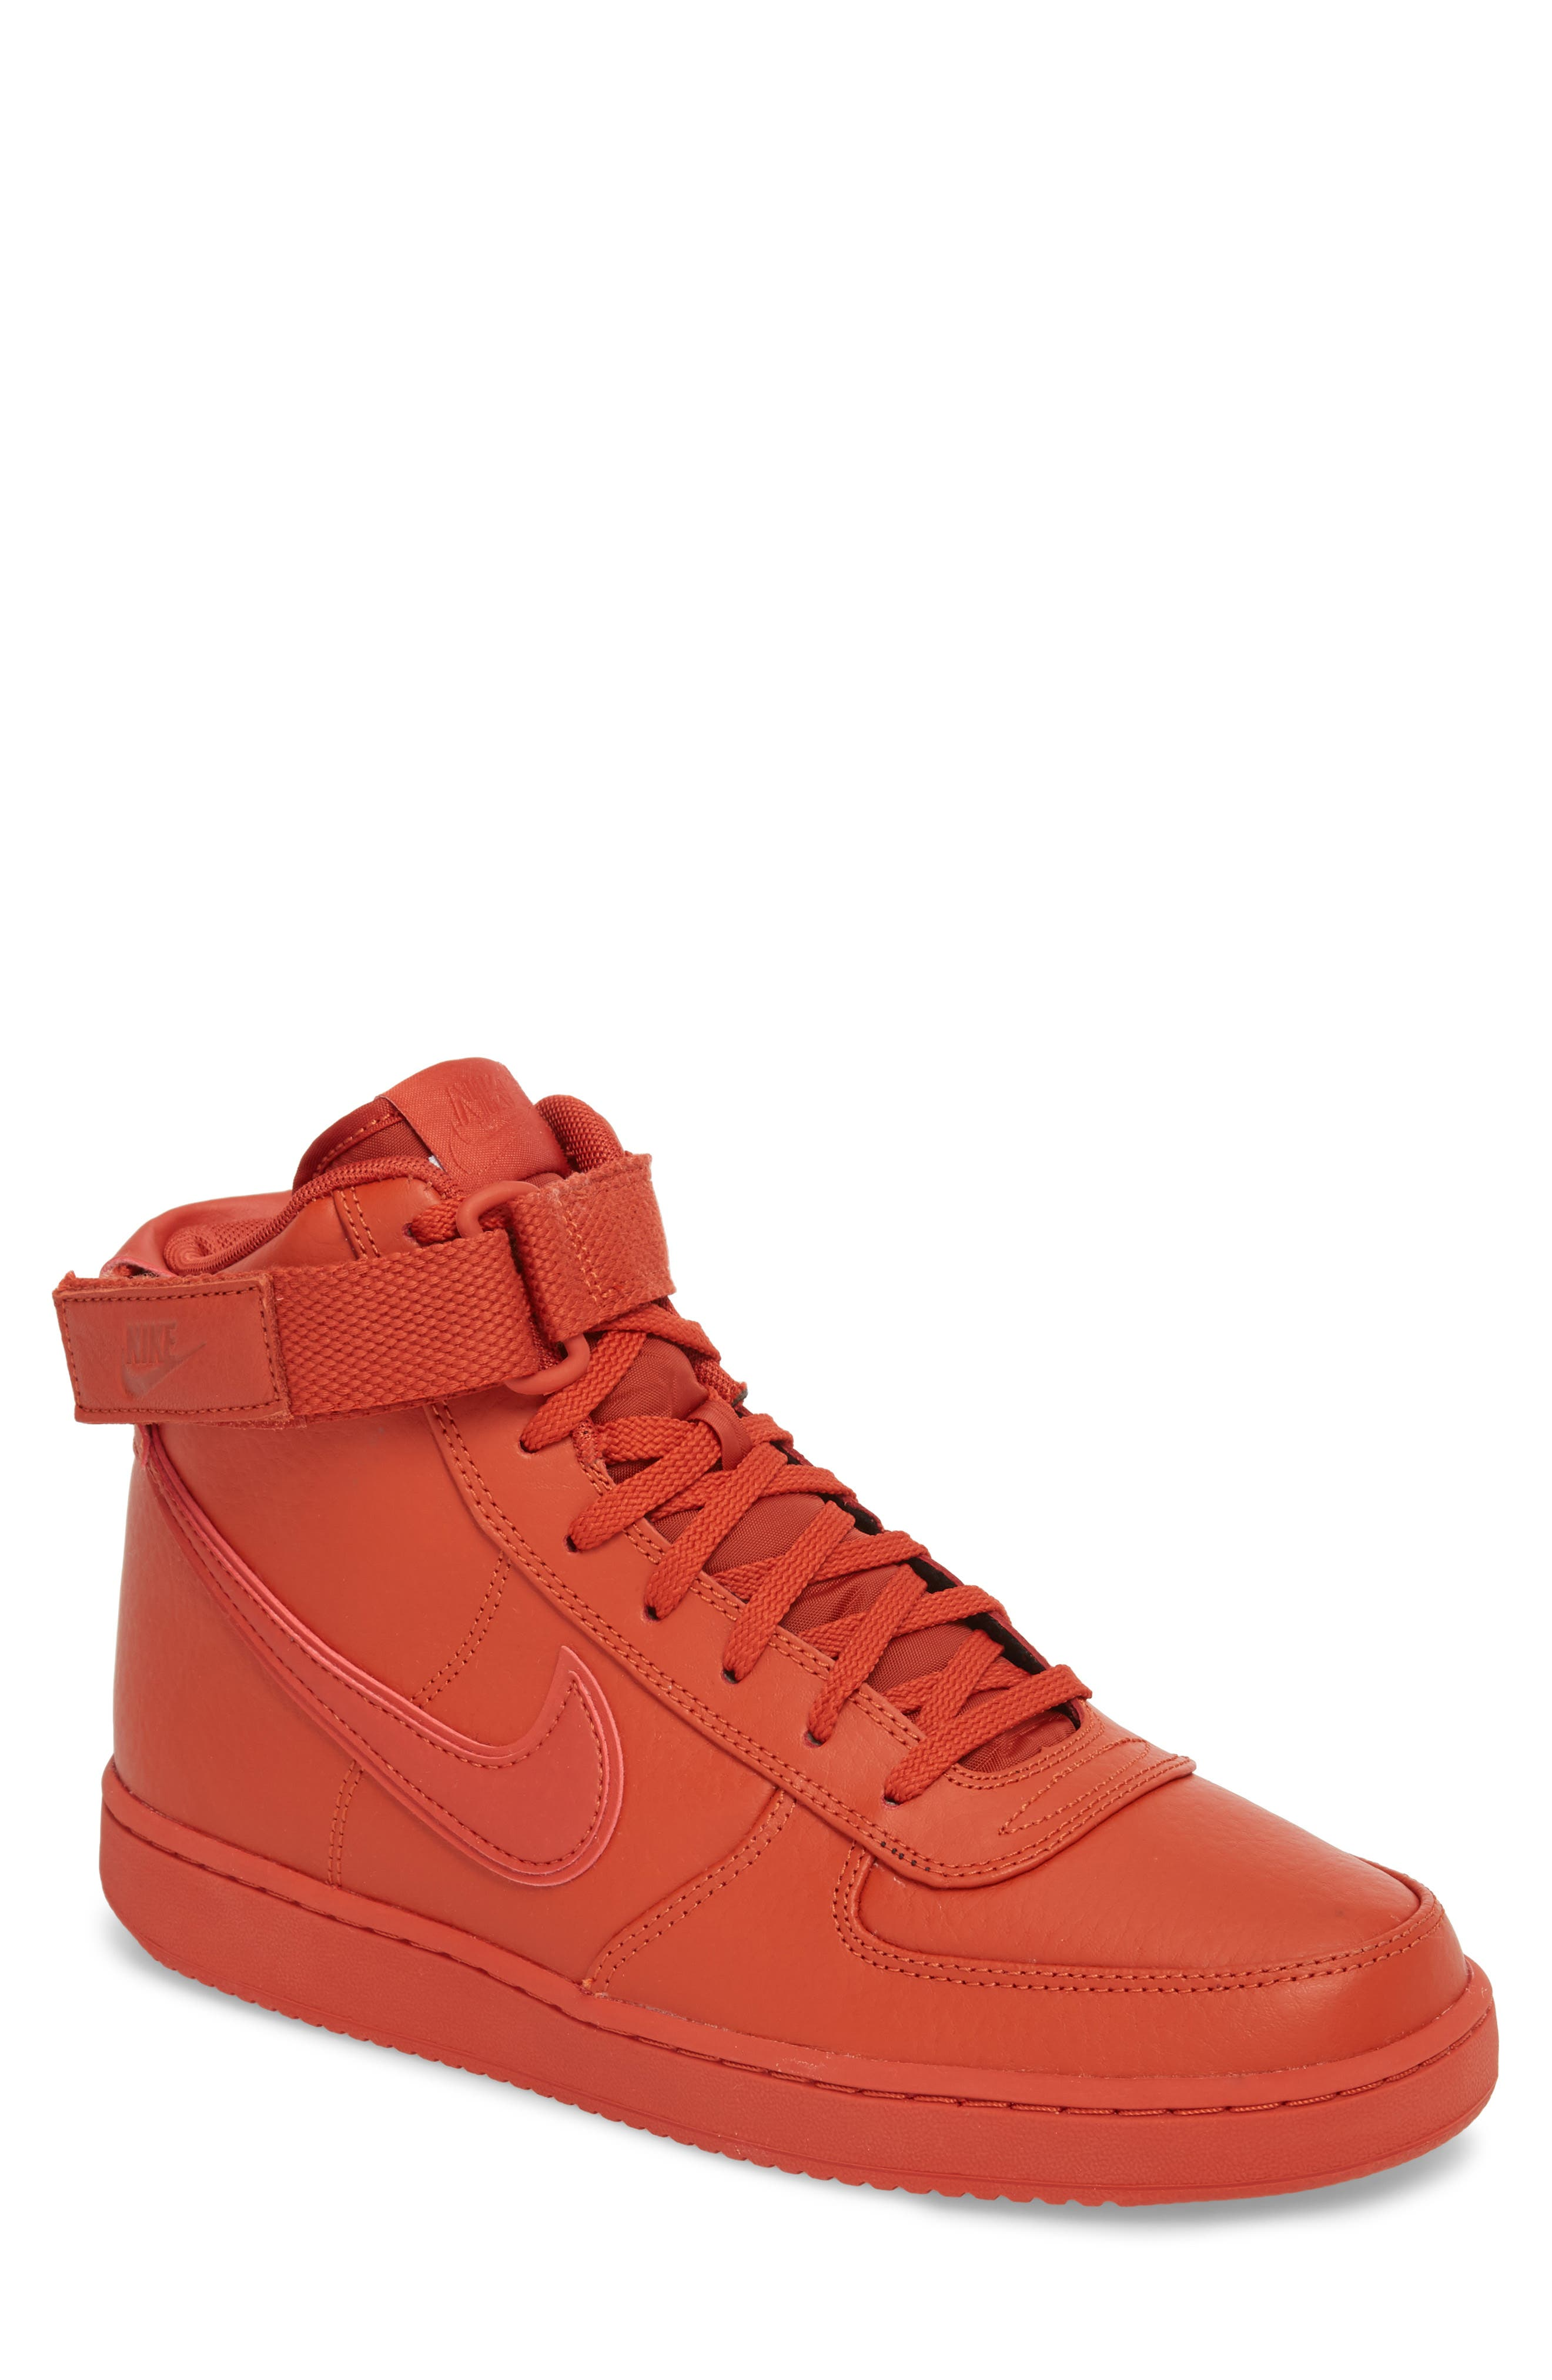 Vandal High Supreme Leather Sneaker,                             Main thumbnail 1, color,                             DRAGON RED